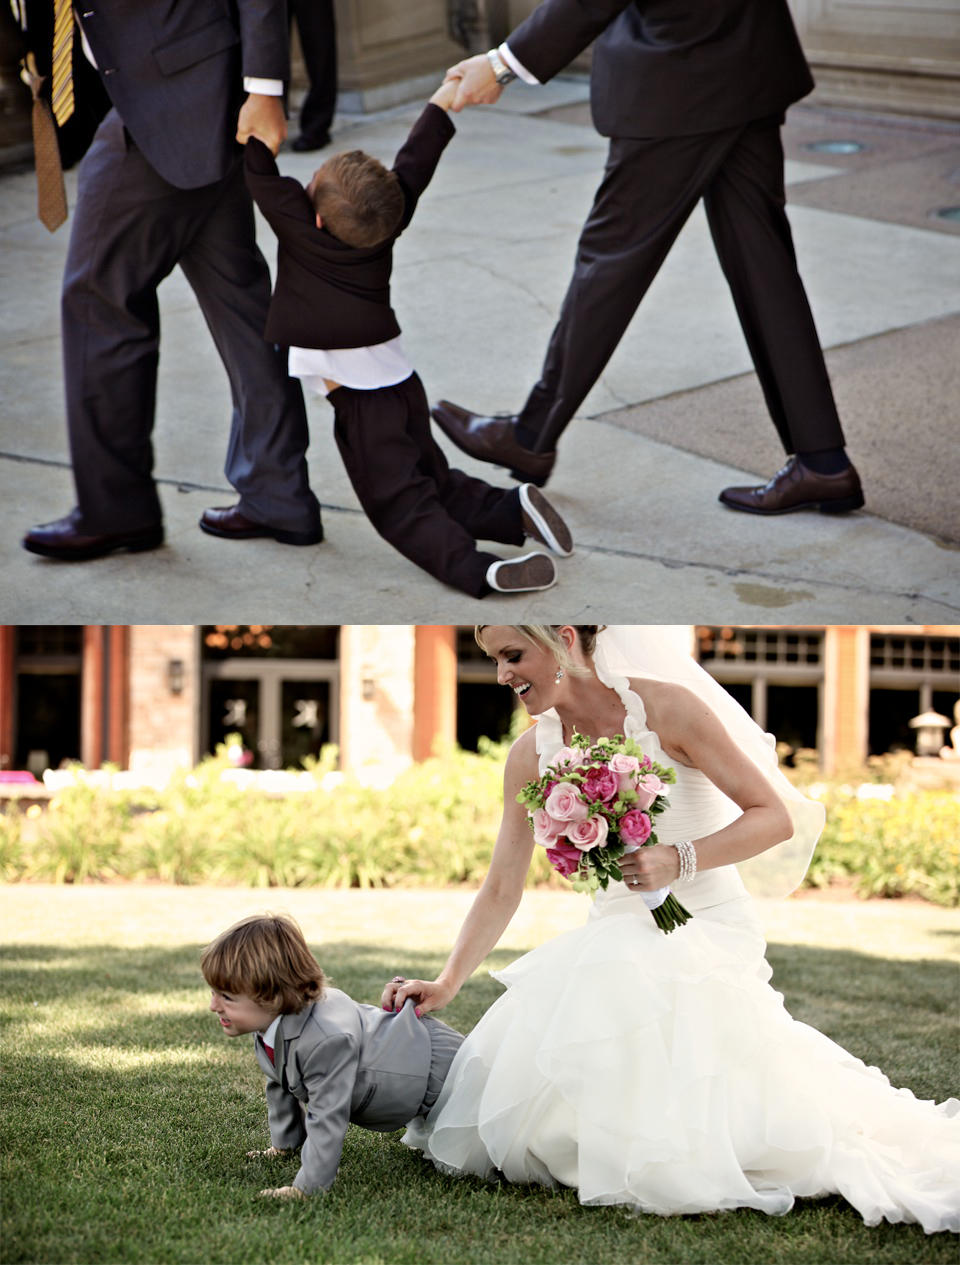 Funny-wedding-photos-escape-from-wedding-planning-stress-unforgettable-ring-bearers-dragged-down-the-aisle.full